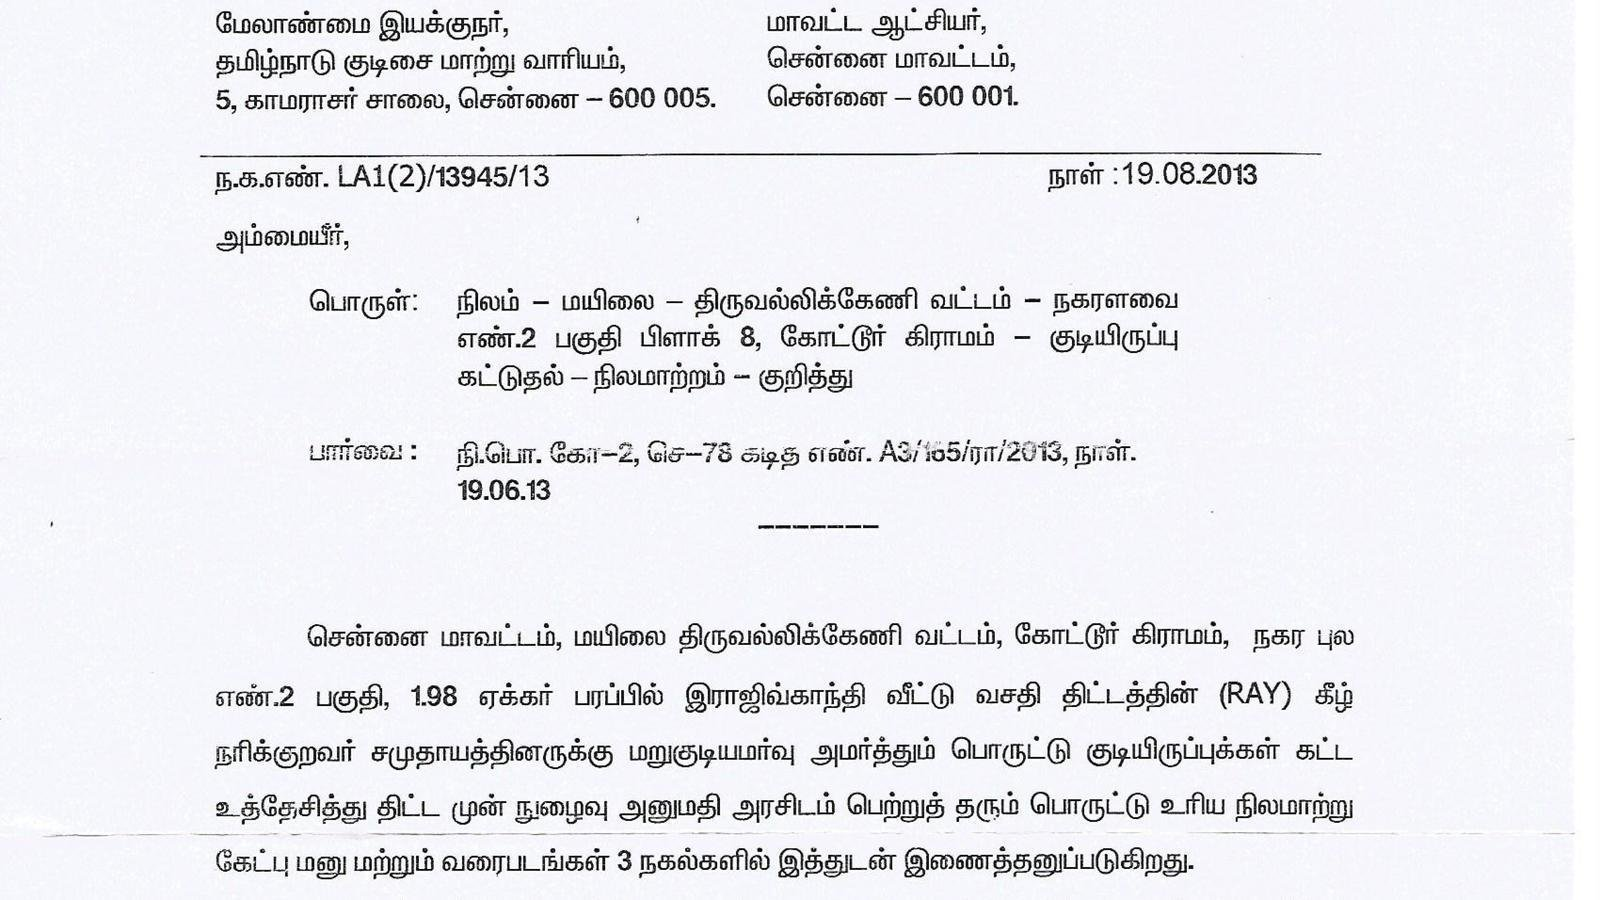 Petition The District Collector Chennai Tamil Nadu